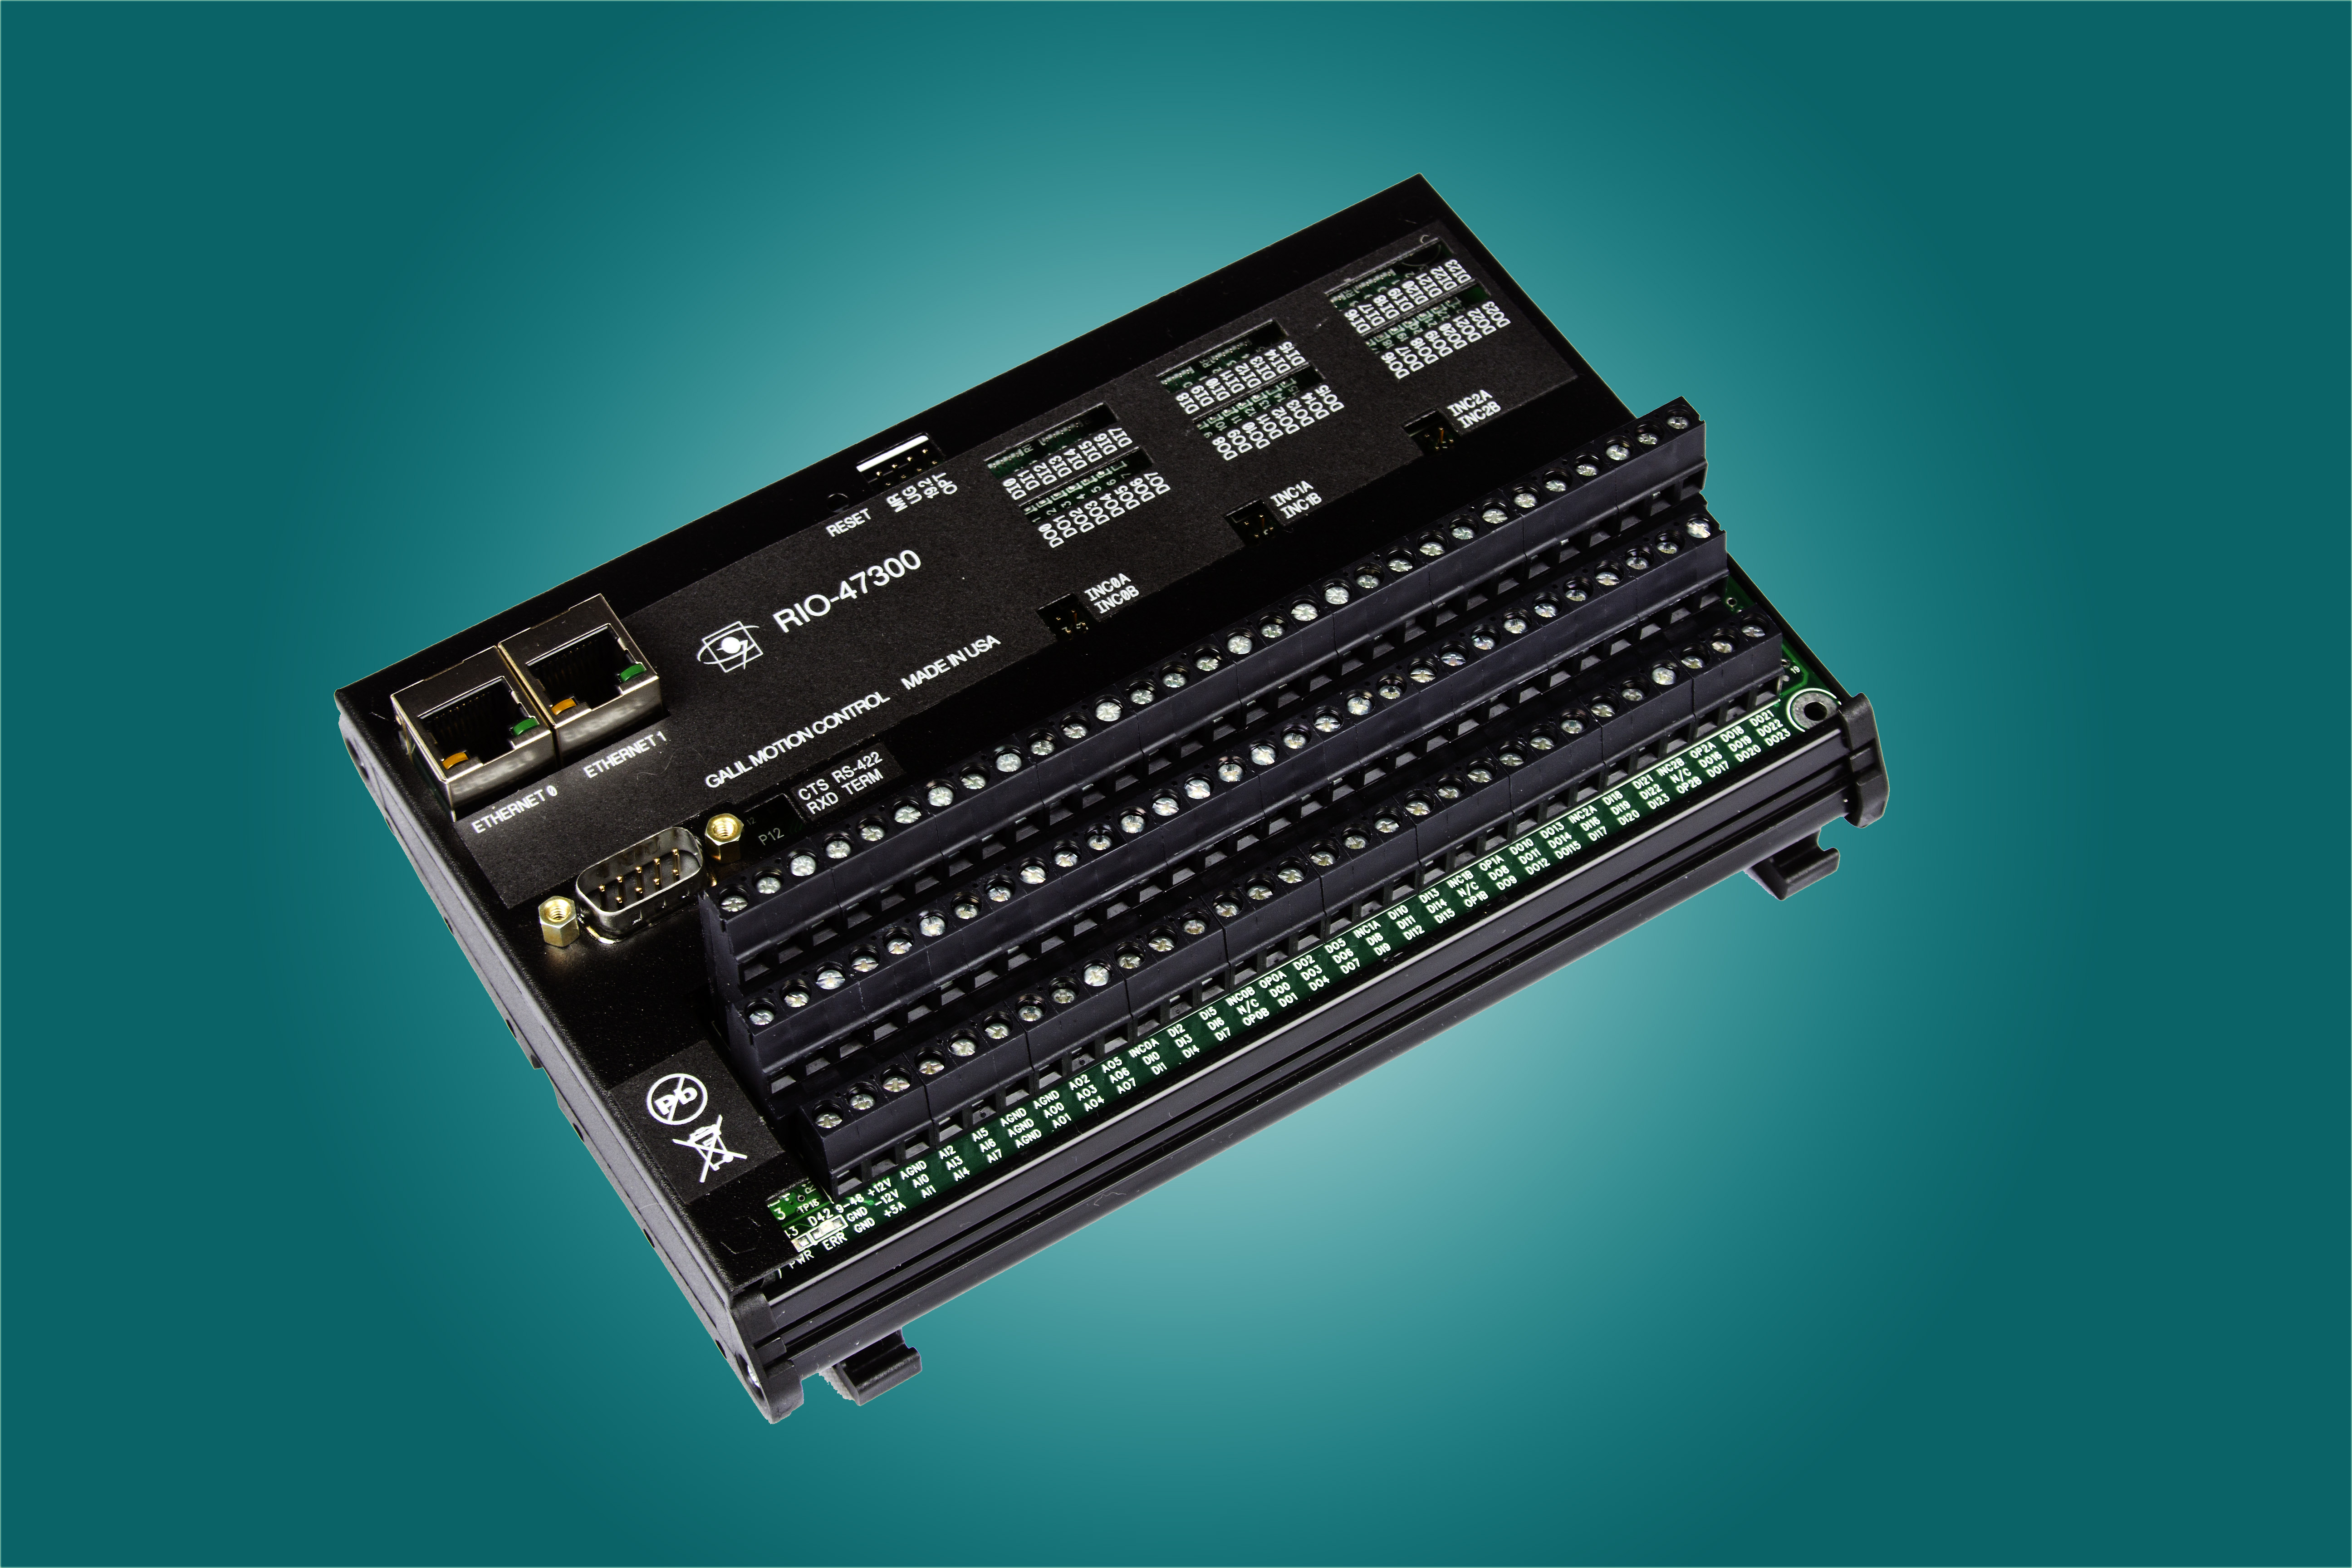 RIO-47300 Pocket PLC Has 48 Digital and 16 Analog I/O, and Two Ethernet Ports